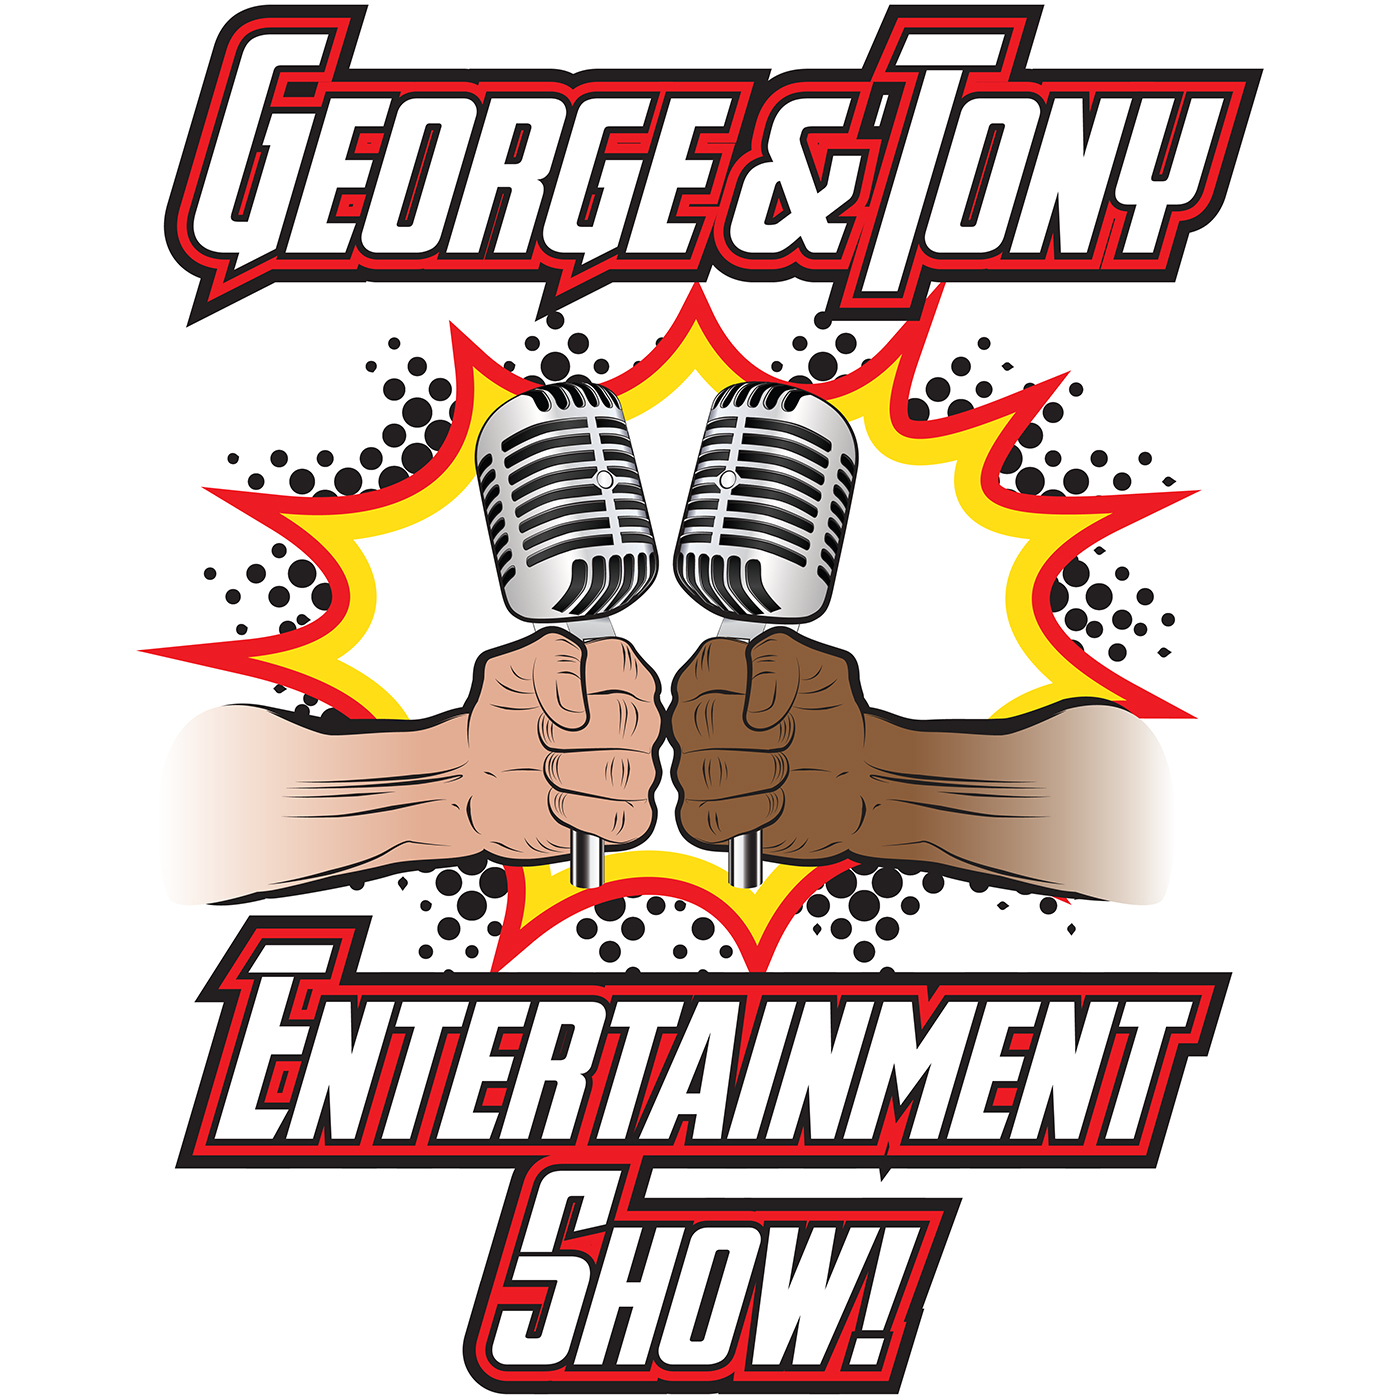 George and Tony Entertainment Show #126